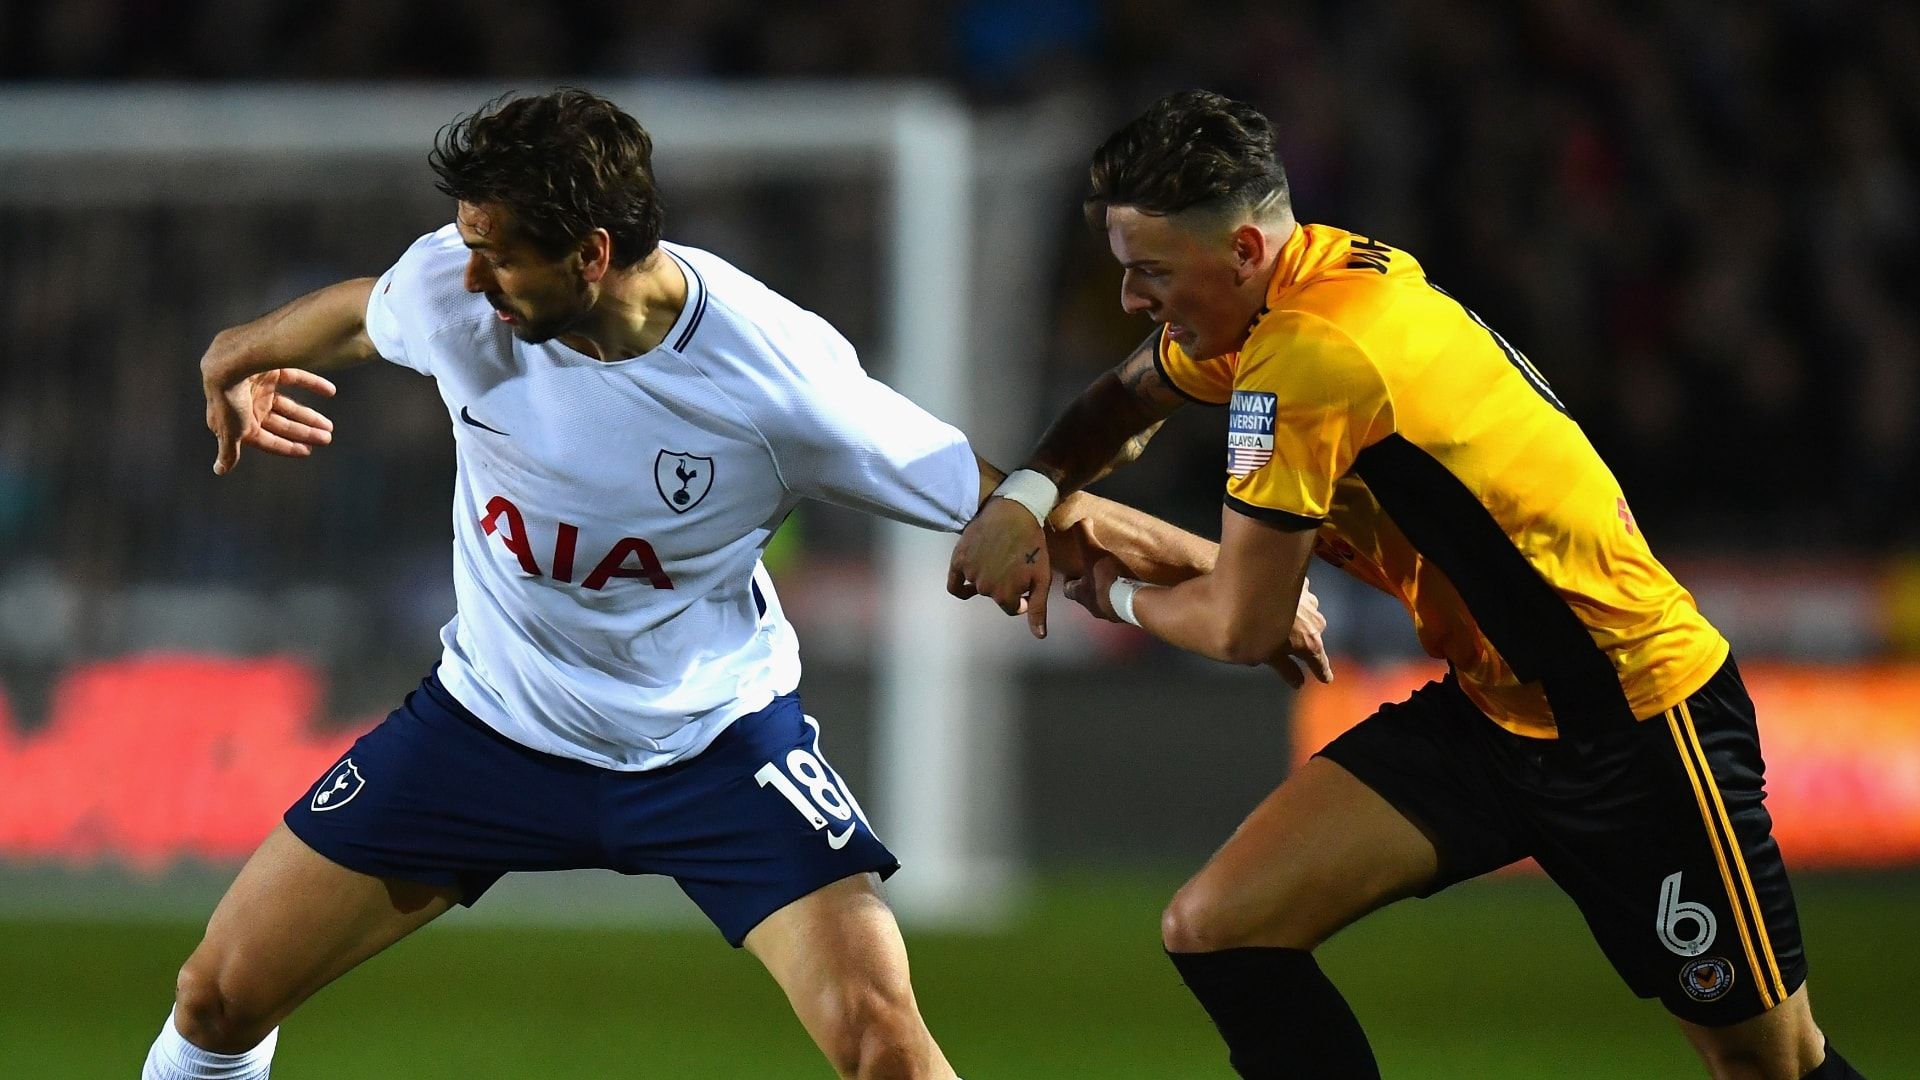 Tottenham vs Newport match preview